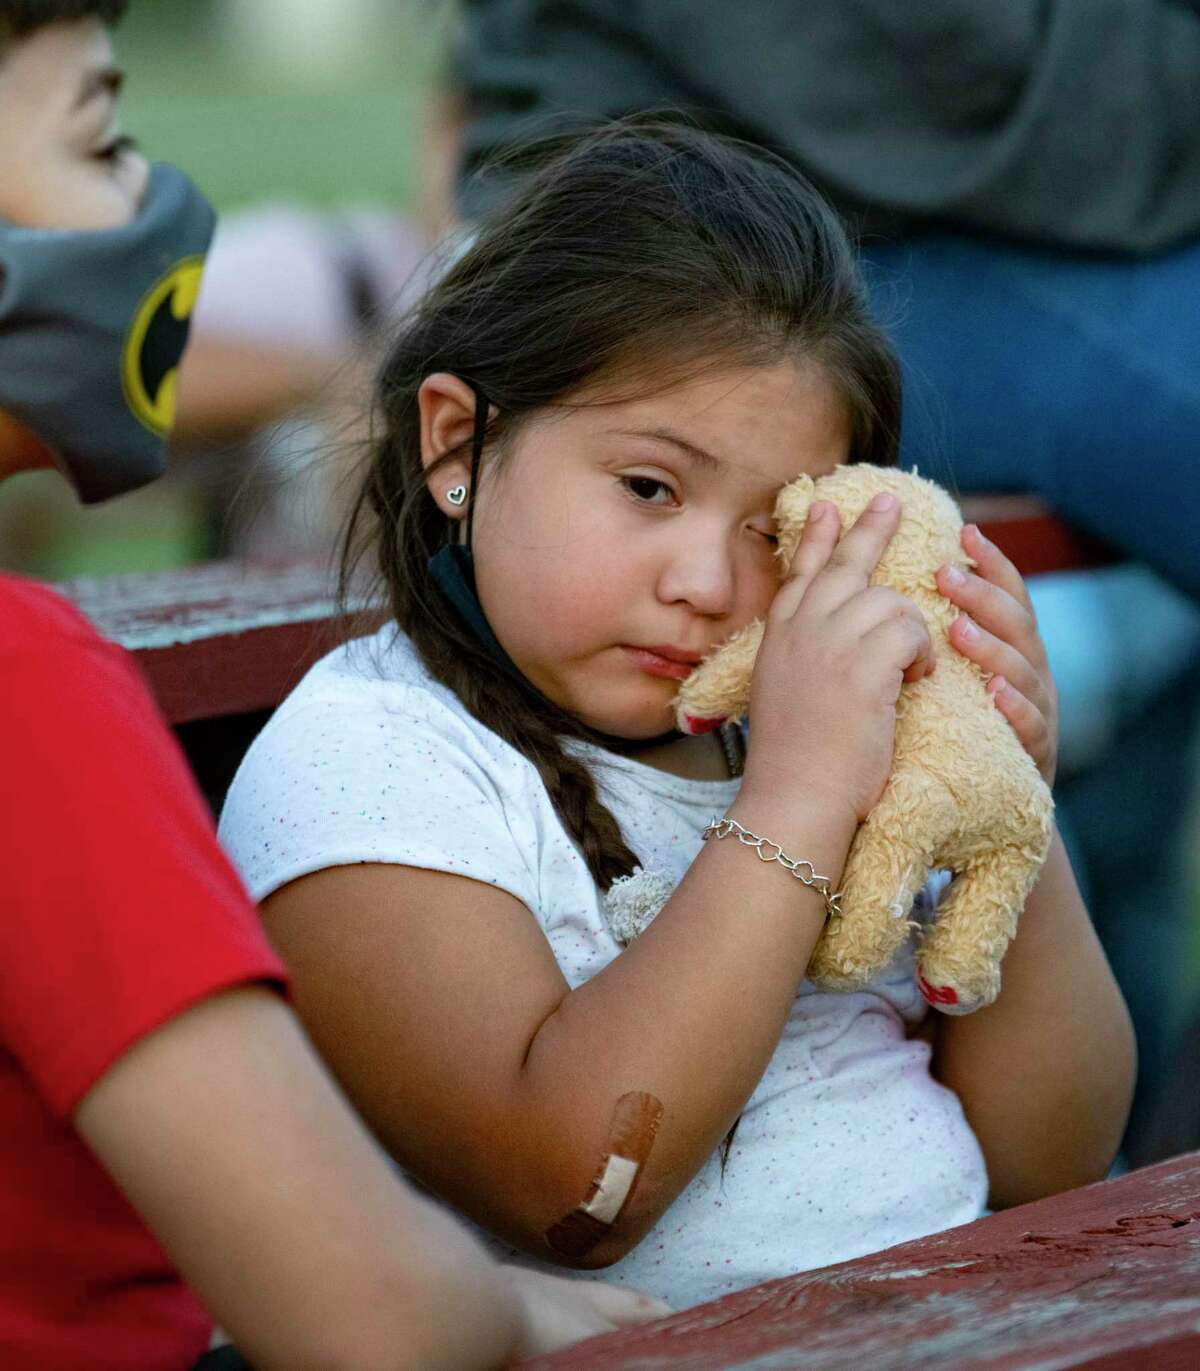 Amaris Gonzales, 7, wipes away a tear during a vigil for James, who was last seen Jan. 4. Human remains were found on April 28 at James' home. DNA results are pending.